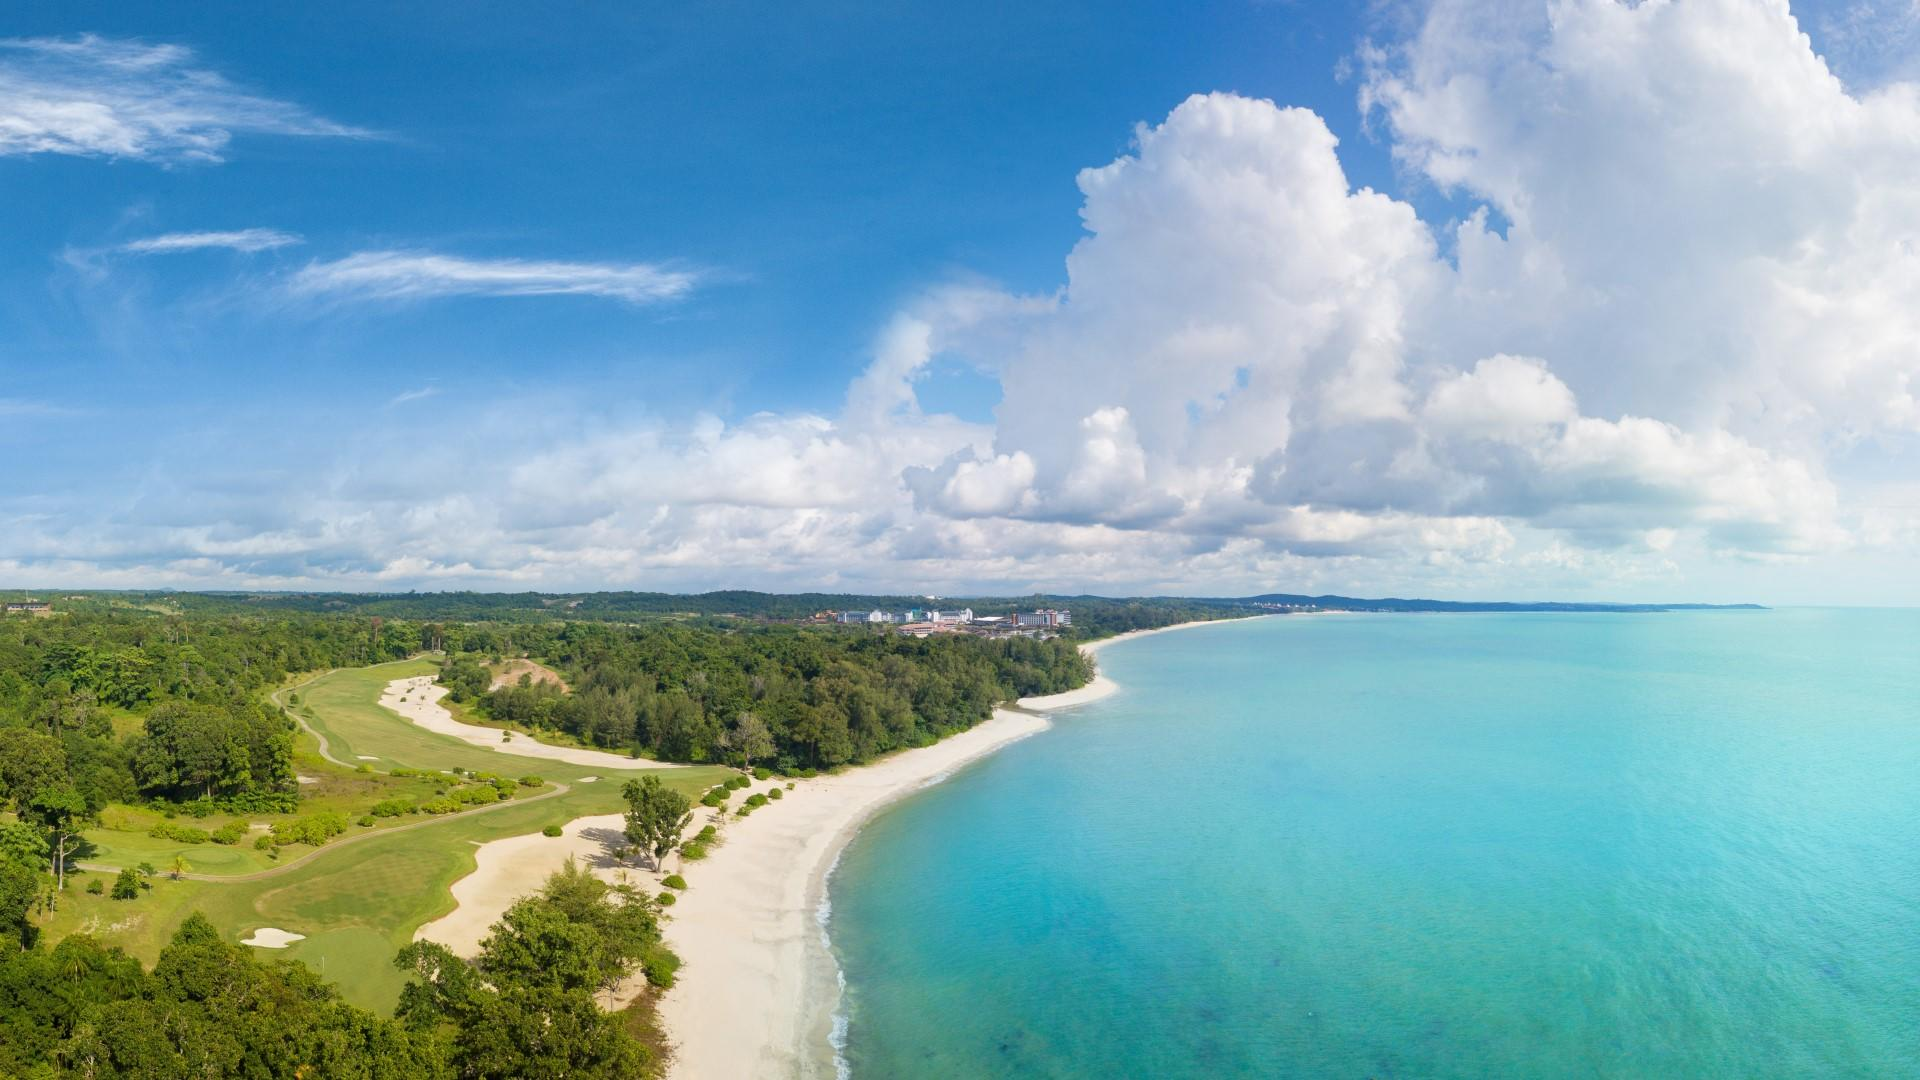 Anantara_Desaru_Coast_Resort_and_Villas_Beach_Aerial_View